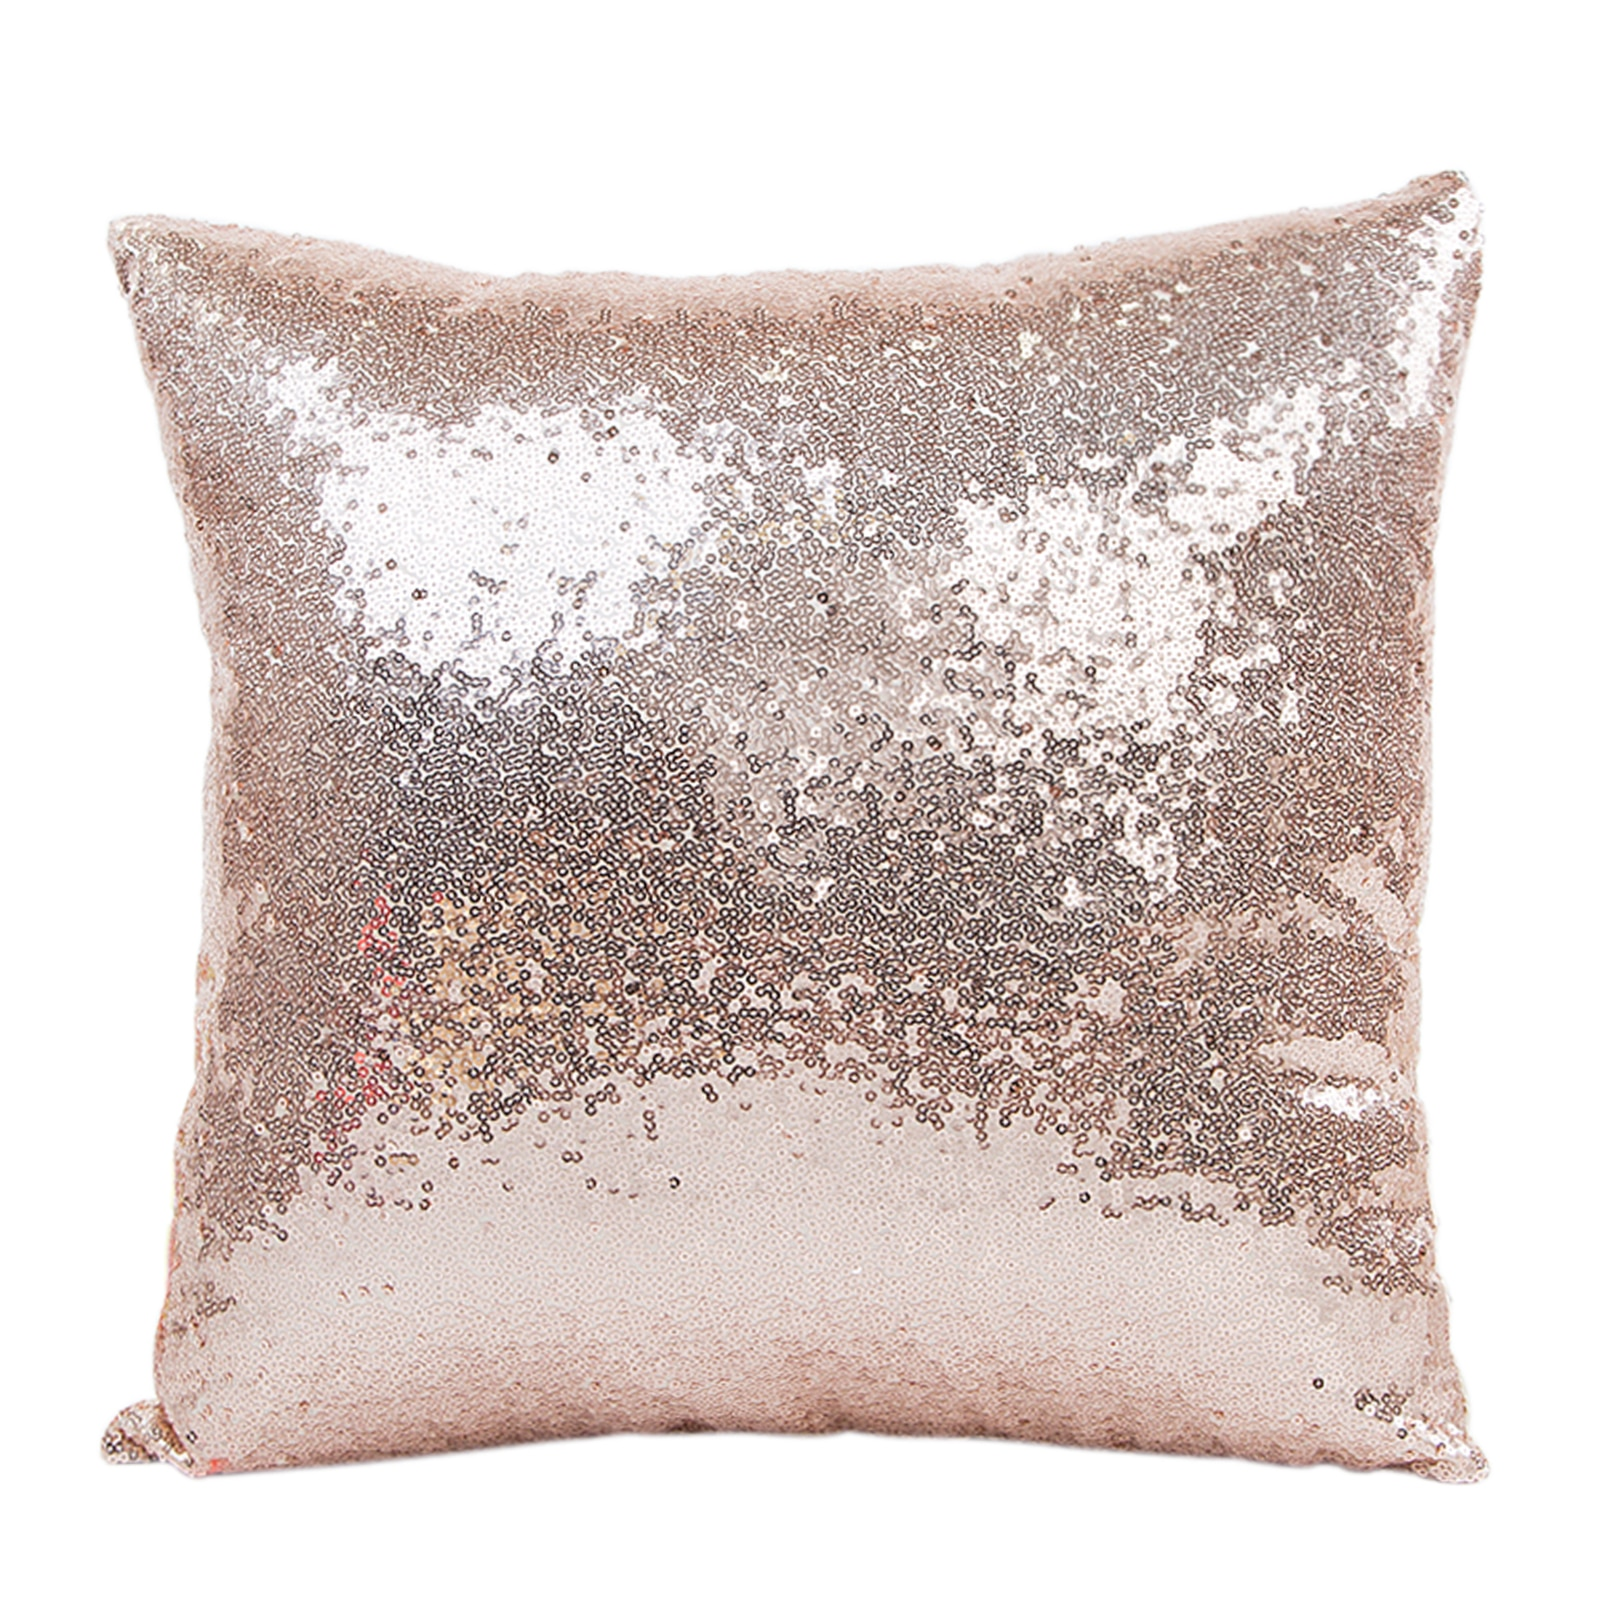 Solid Color Glitter Sequin Cushion Cover Pillowcase Christmas Wedding Party Cafe Home Sofa Seat Bed Throw Pillow Cover Supply 2019 christmas throw pillow covers santa clause 0utdoor pillow decorations for home sofa bed pillowcase xmas party kids gift